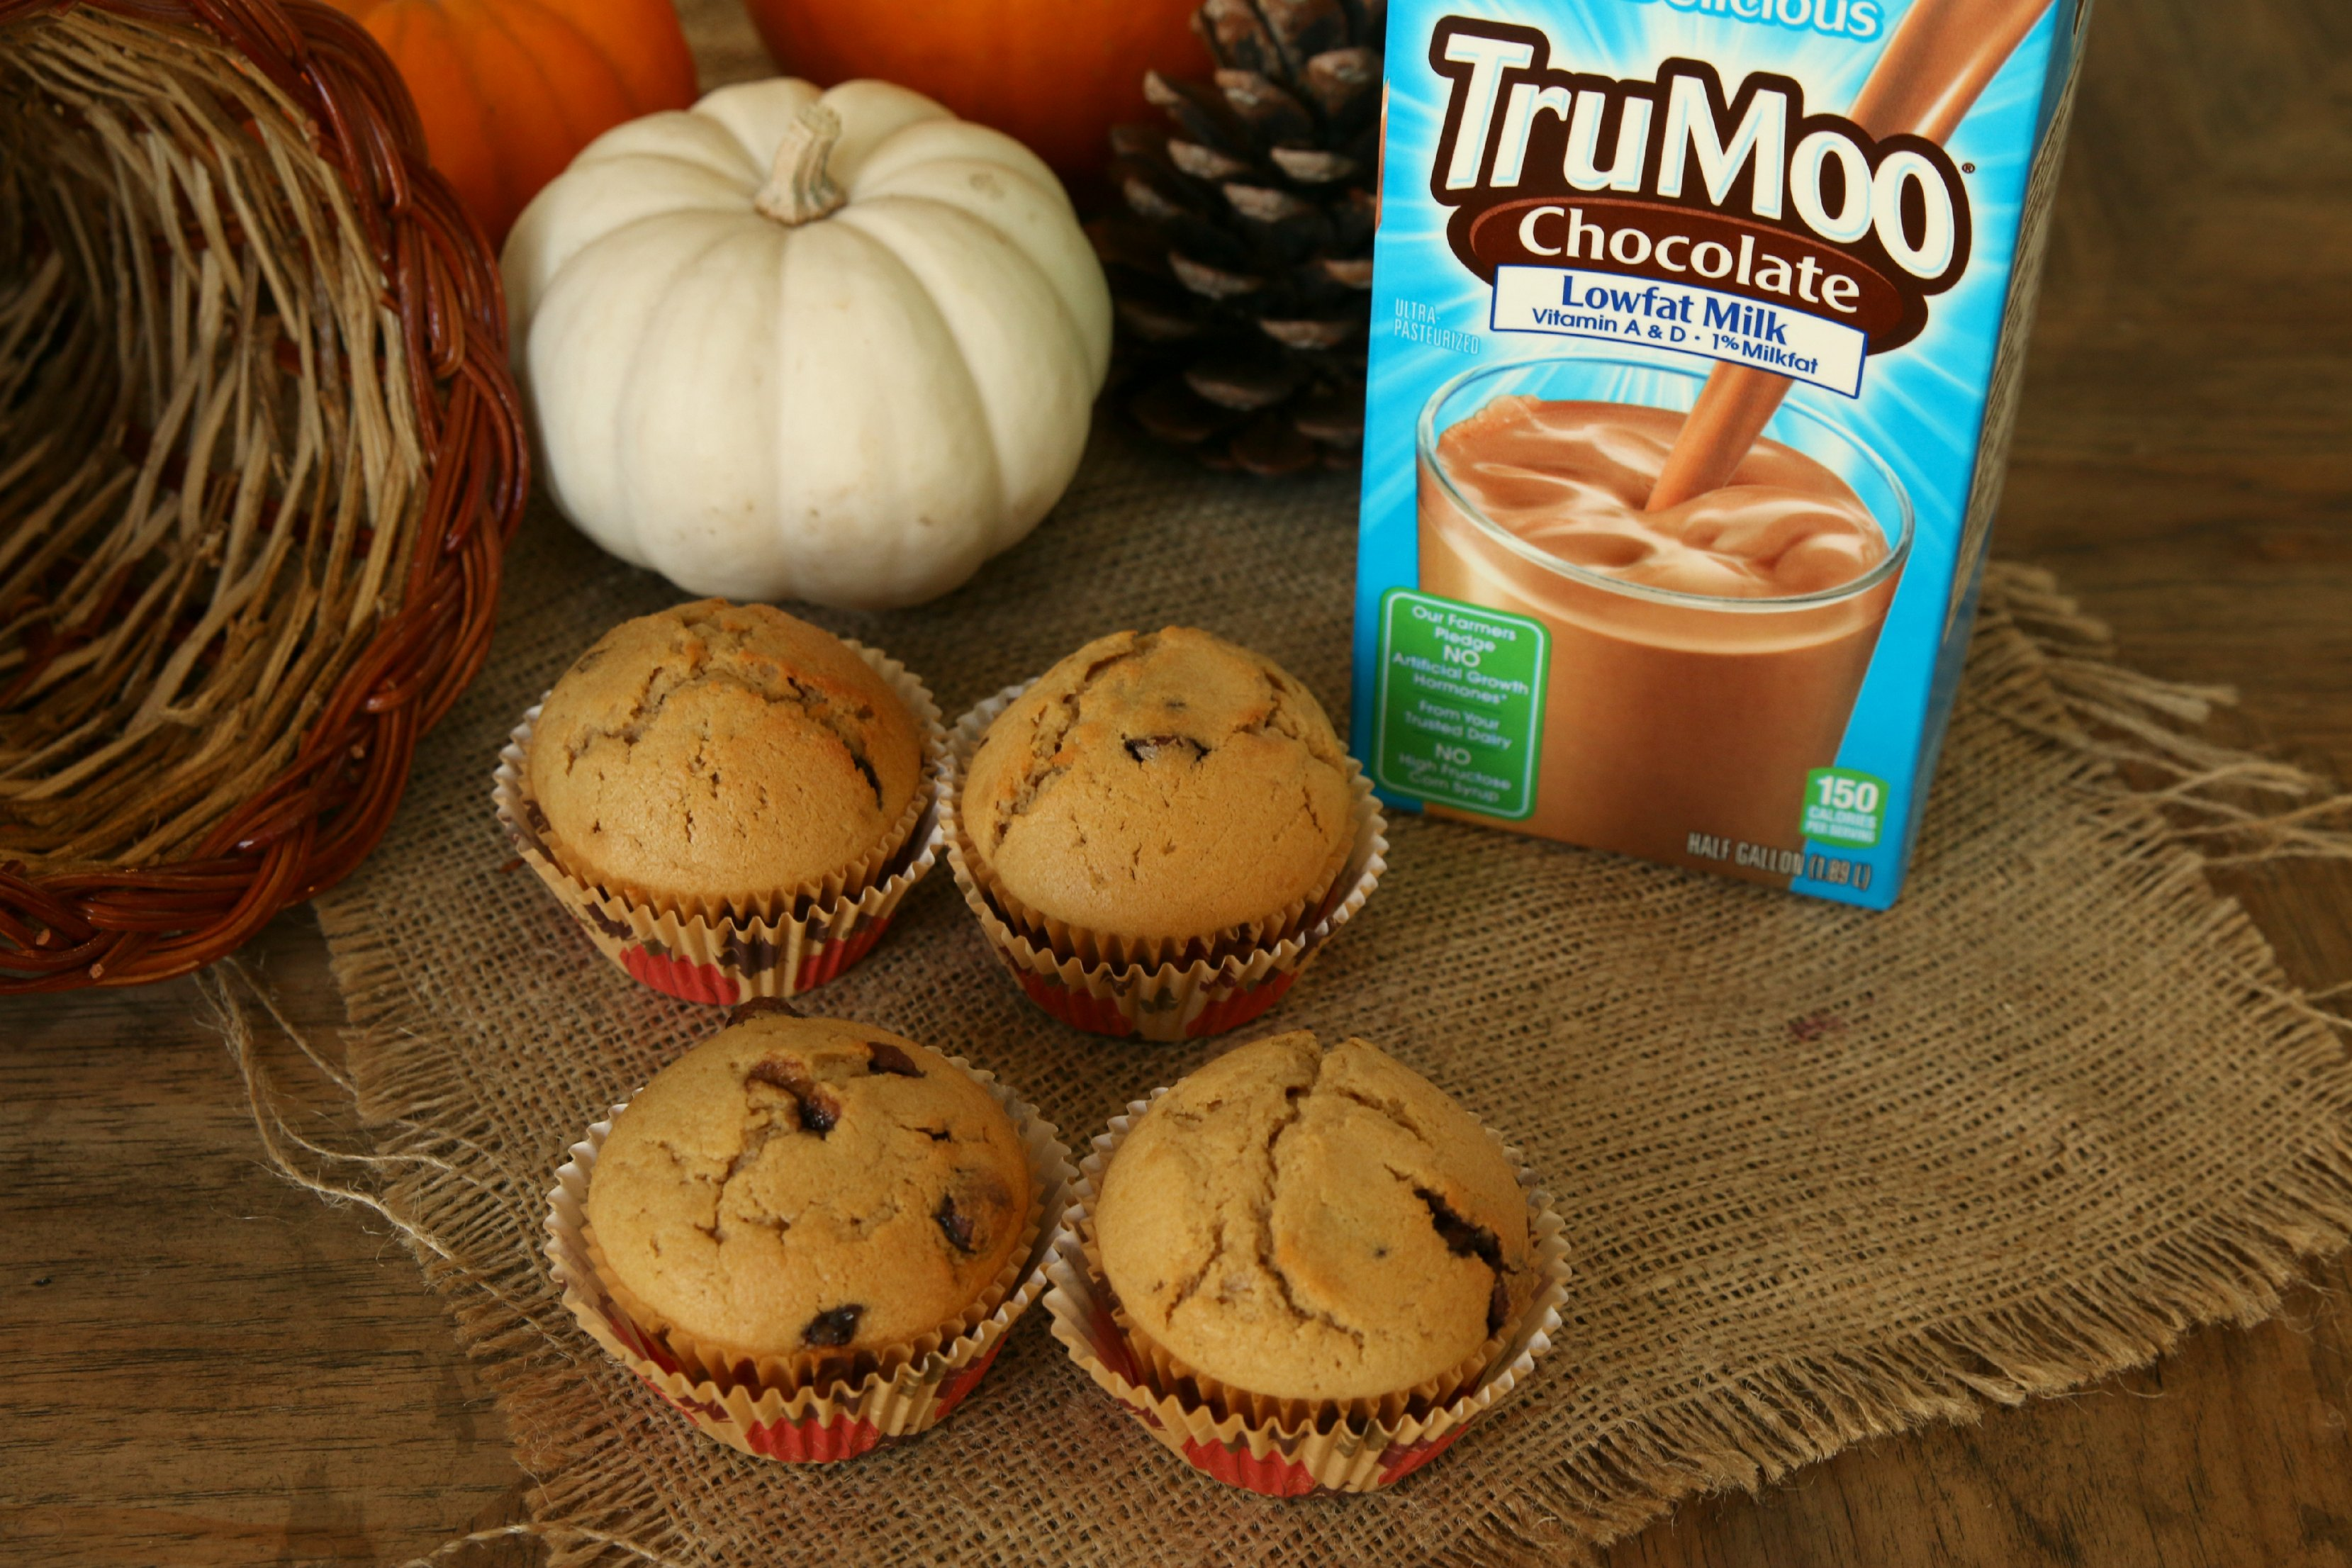 trumoo chocolate muffins